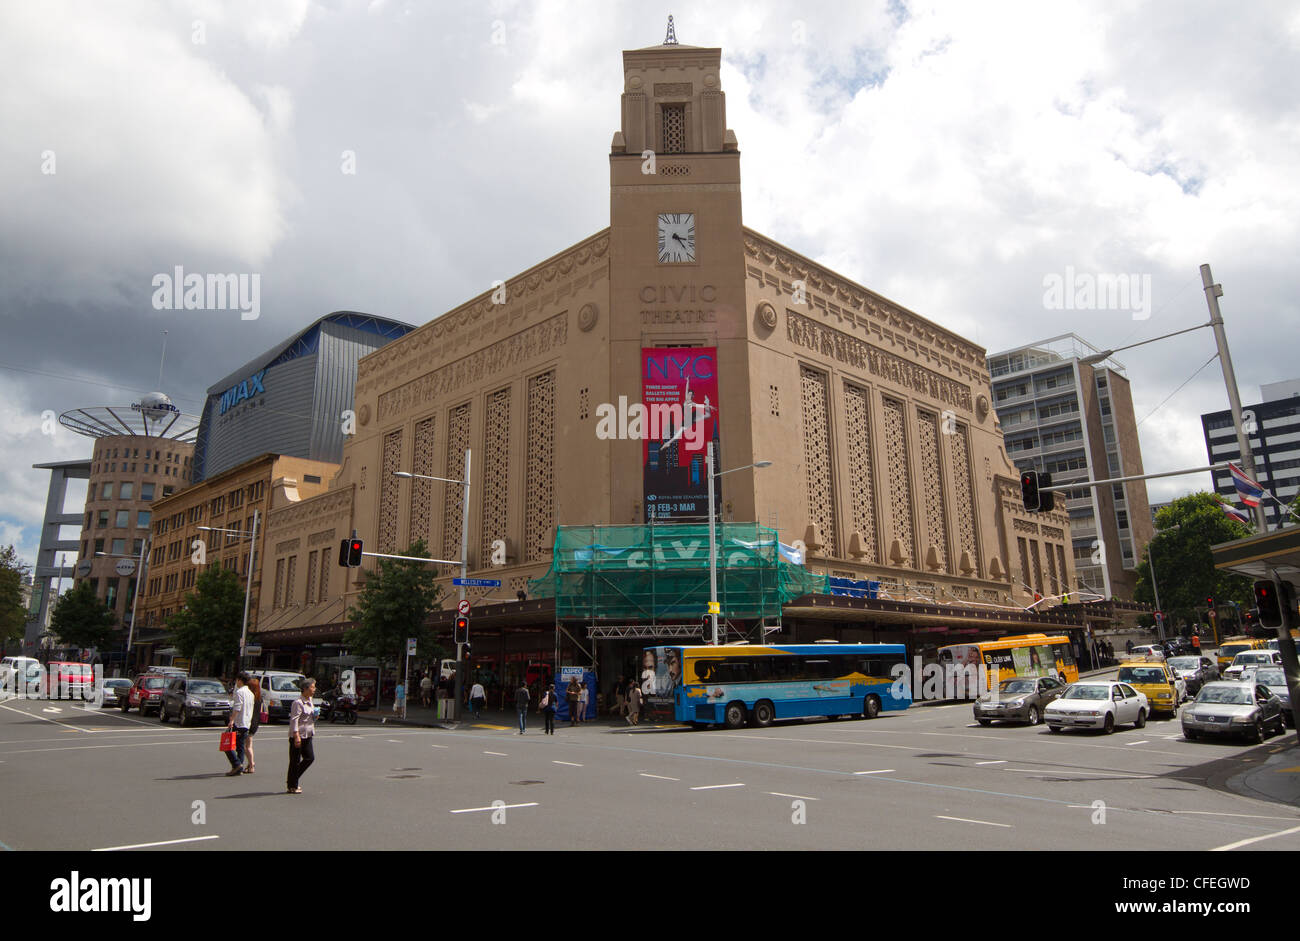 Civic Theater in Auckland, New Zealand - Stock Image